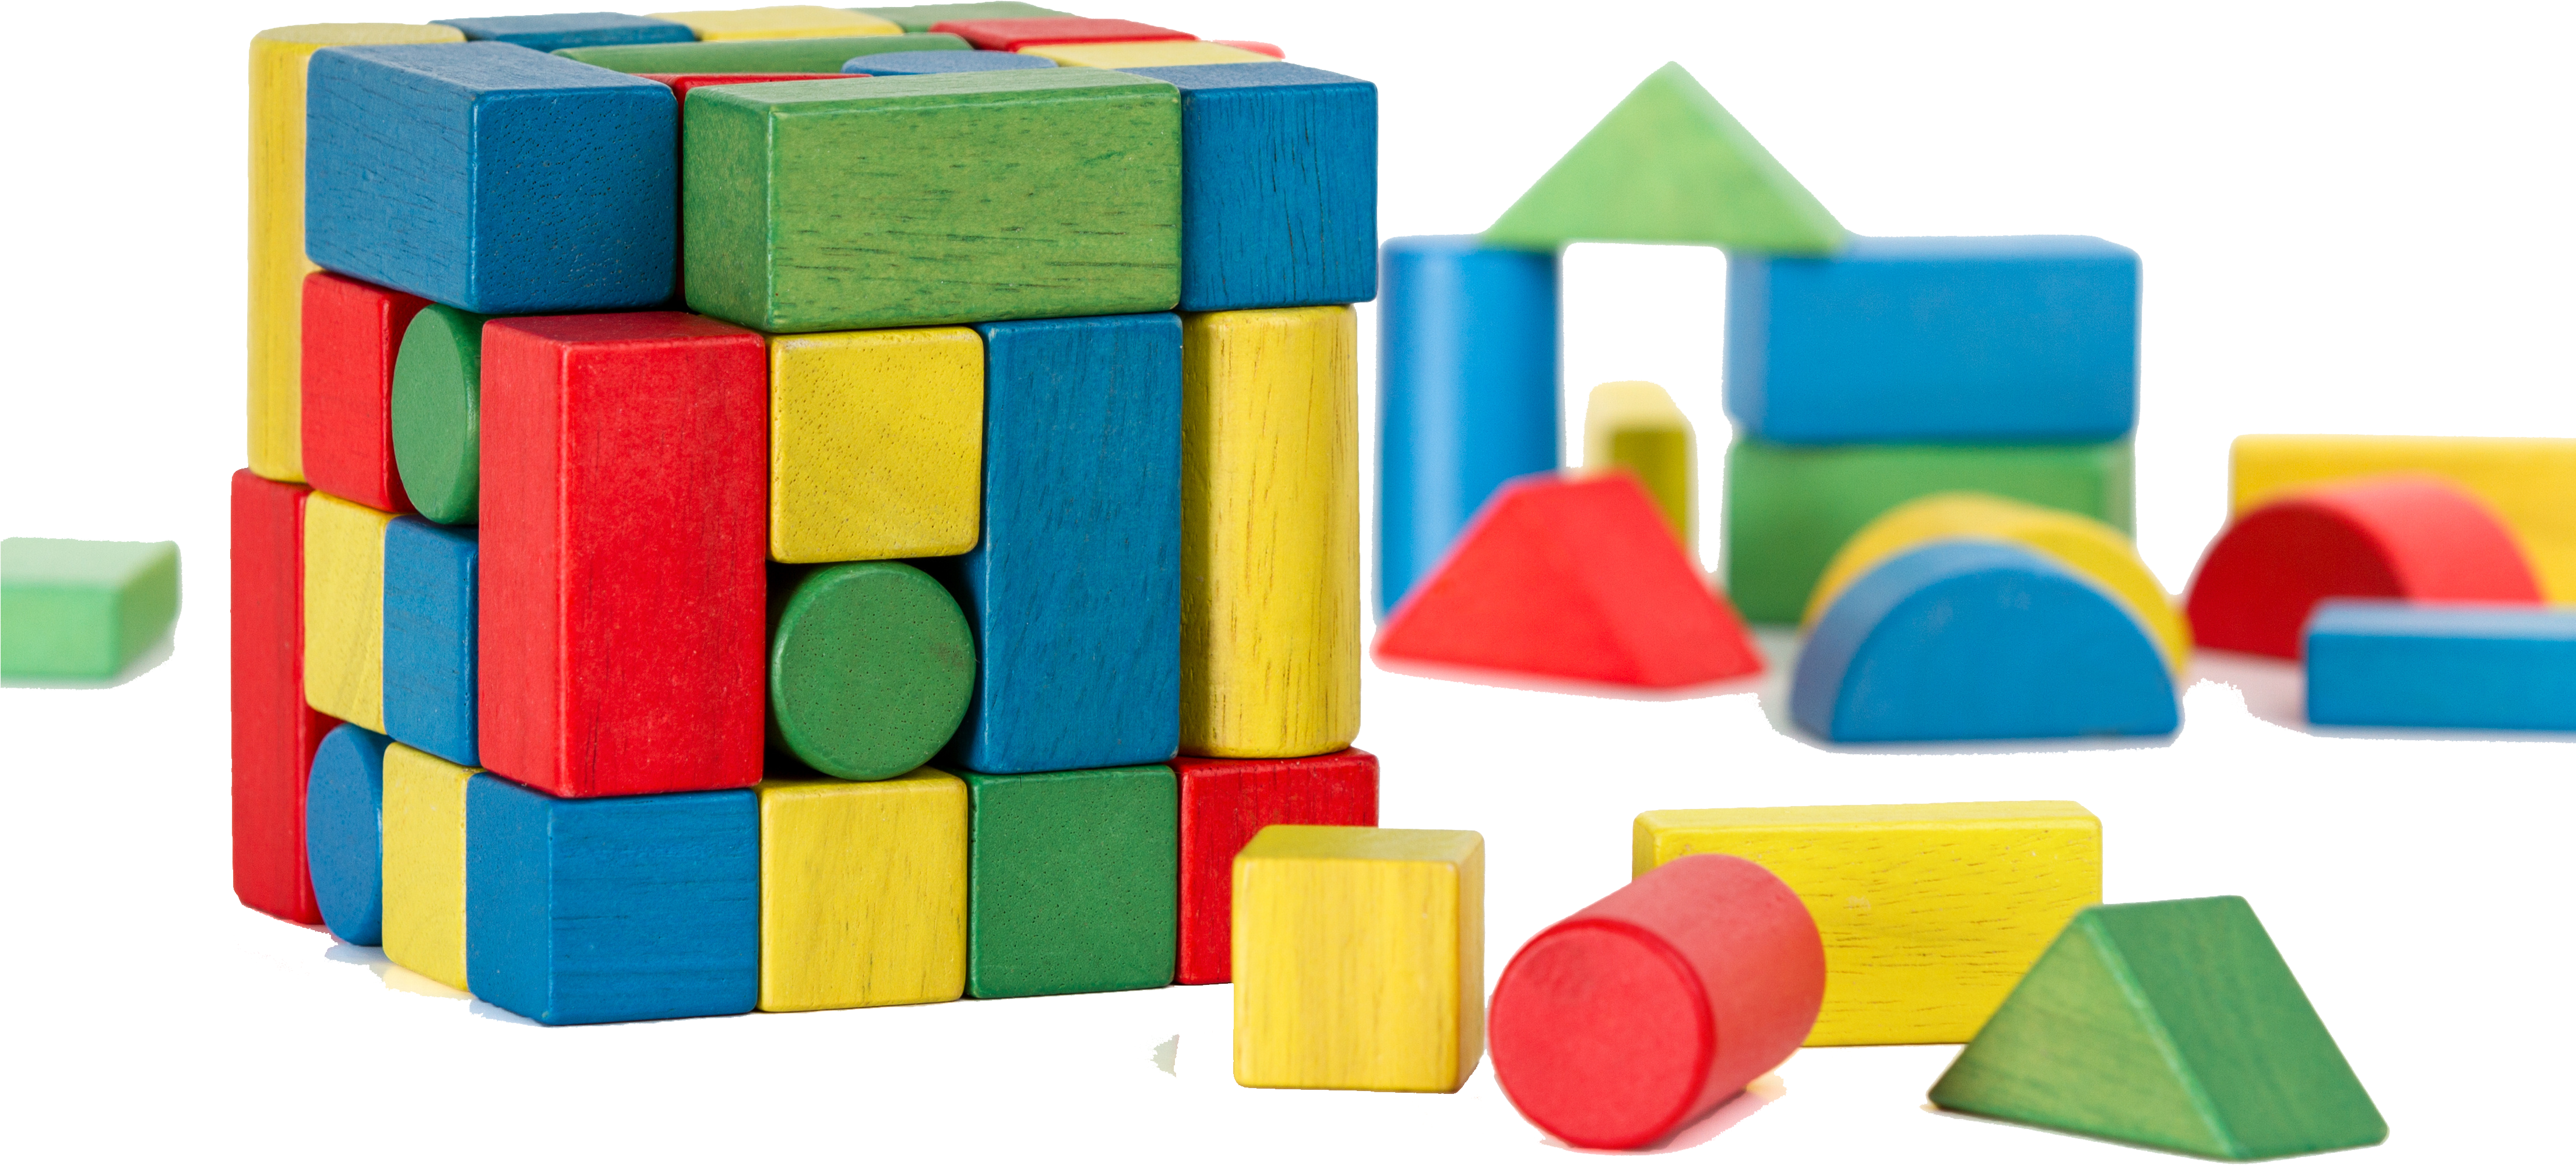 Puzzle clipart building. Jigsaw toy block stock